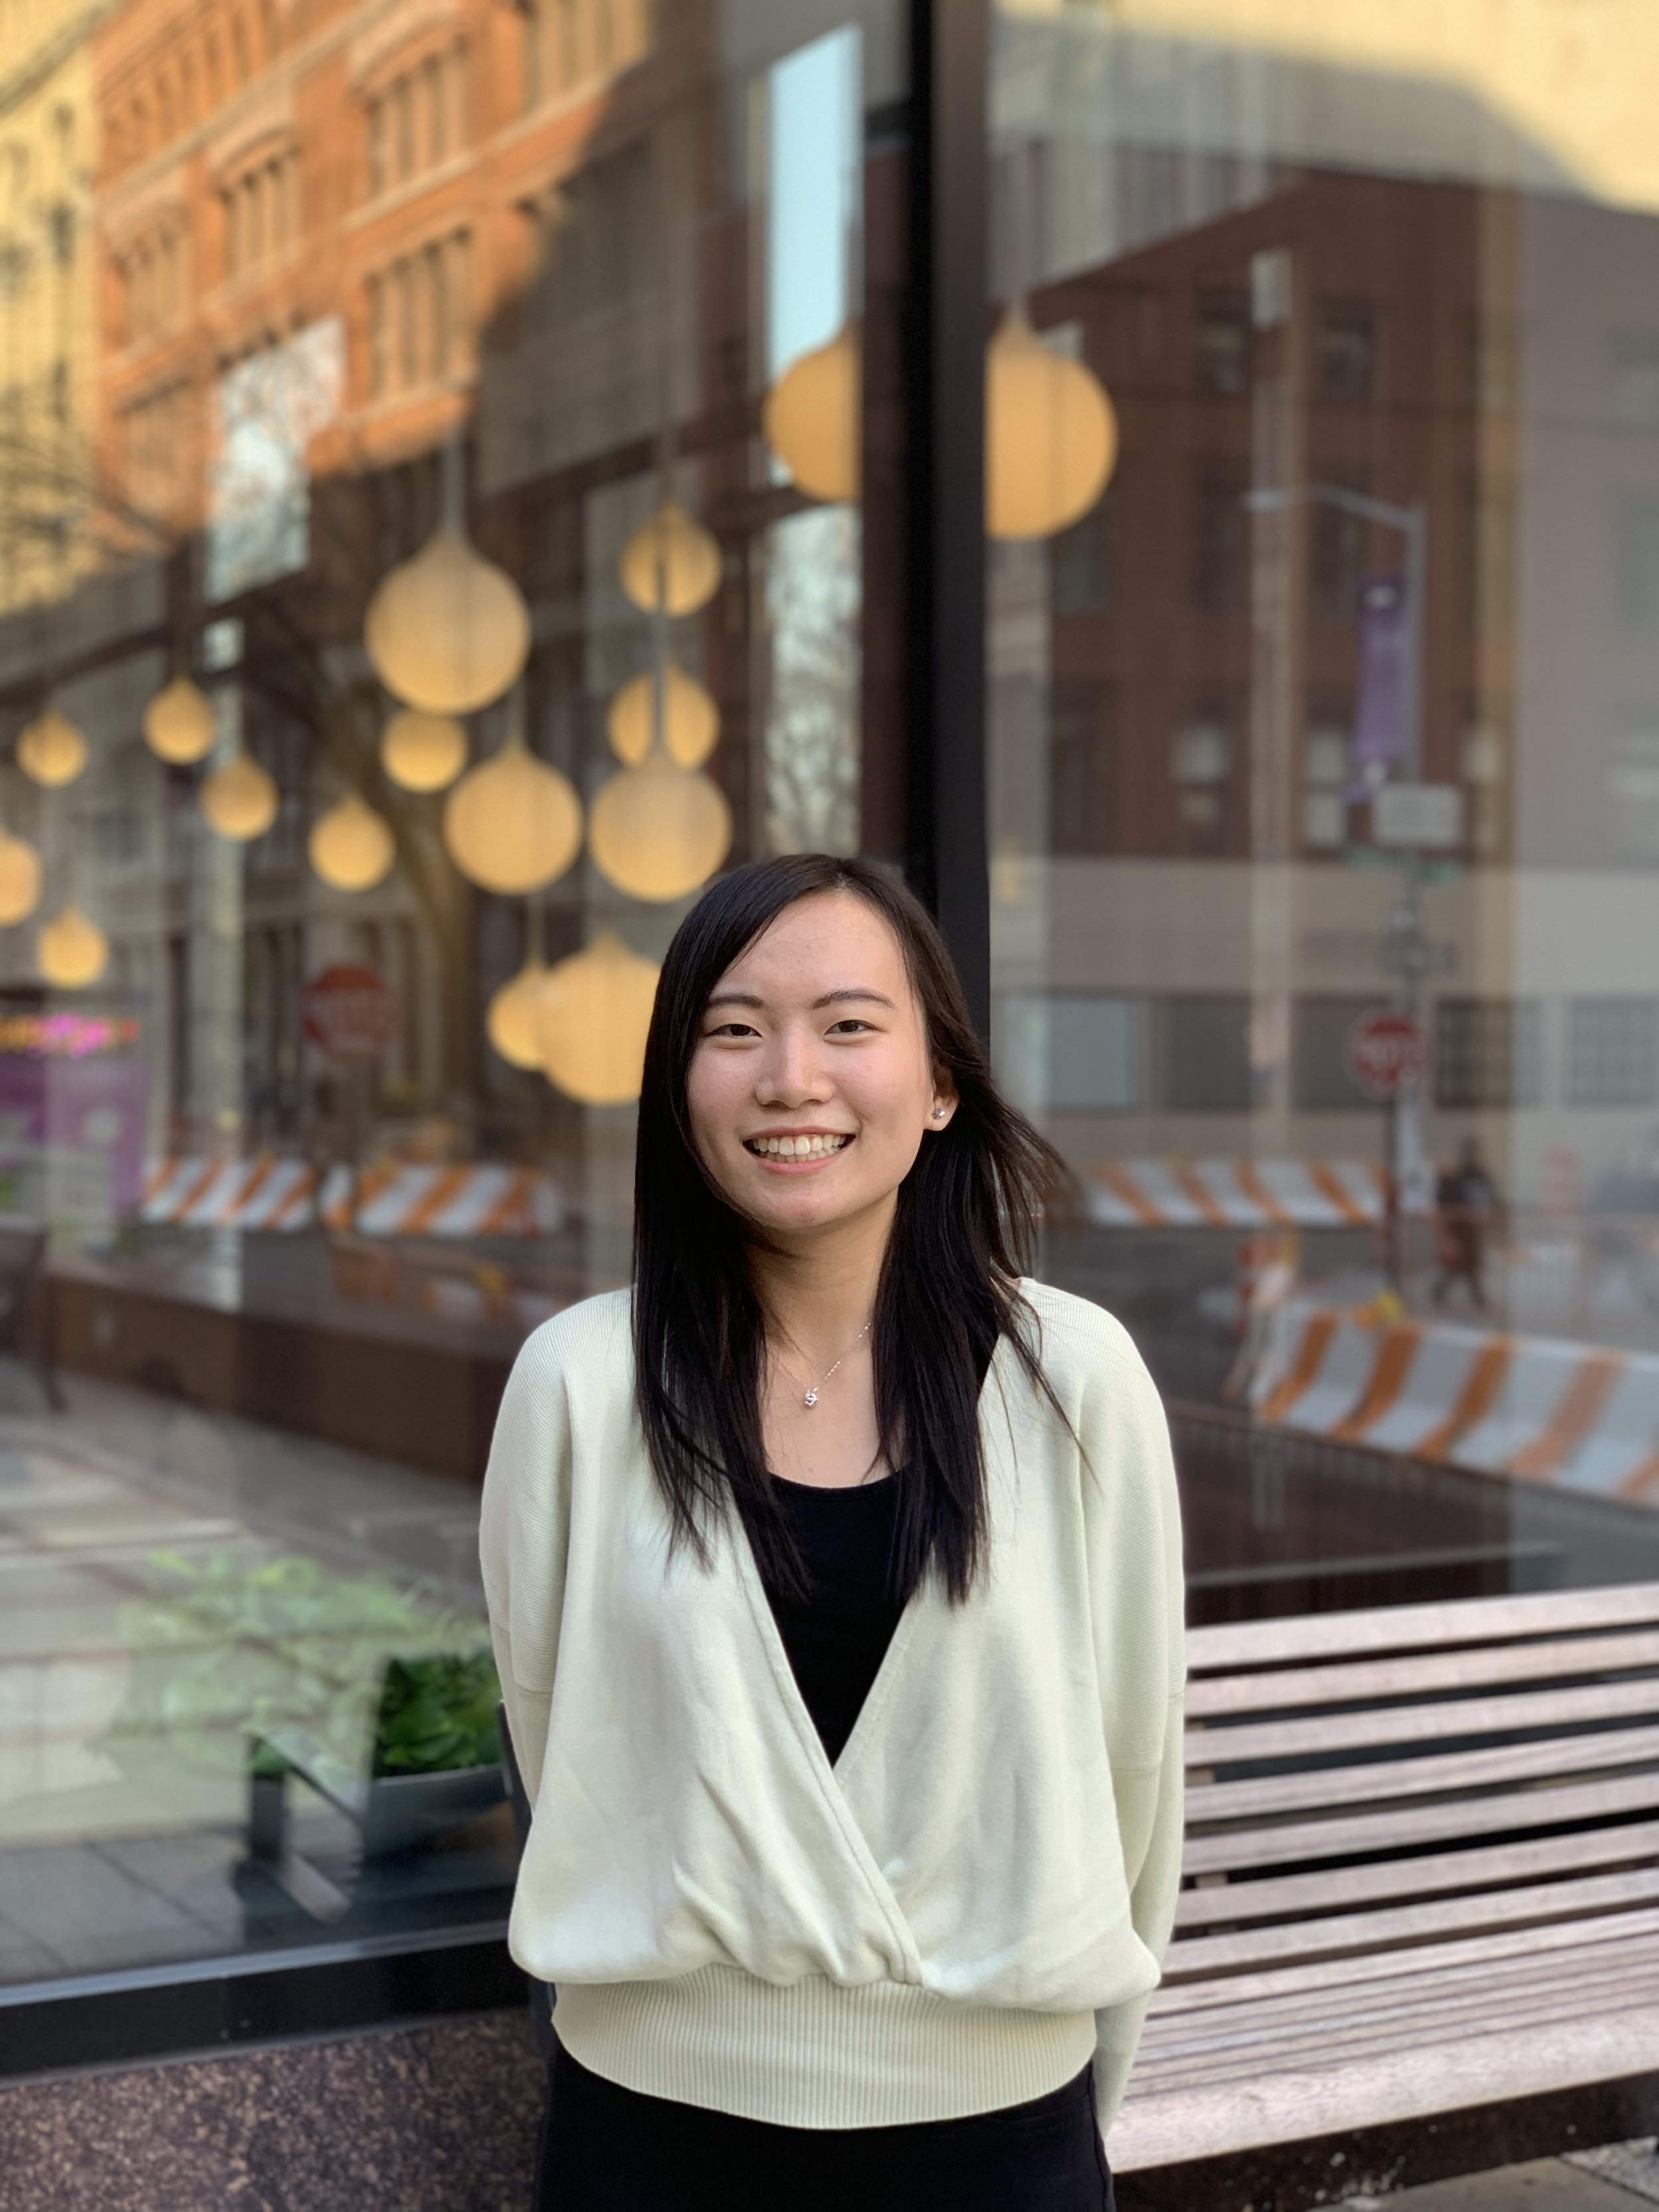 Joanne Wang    Macro Analyst / Vice President   Joanne is from Singapore and is majoring in Finance and minoring in Philosophy. She enjoys playing guitar, hiking, and watching squirrels in the park.